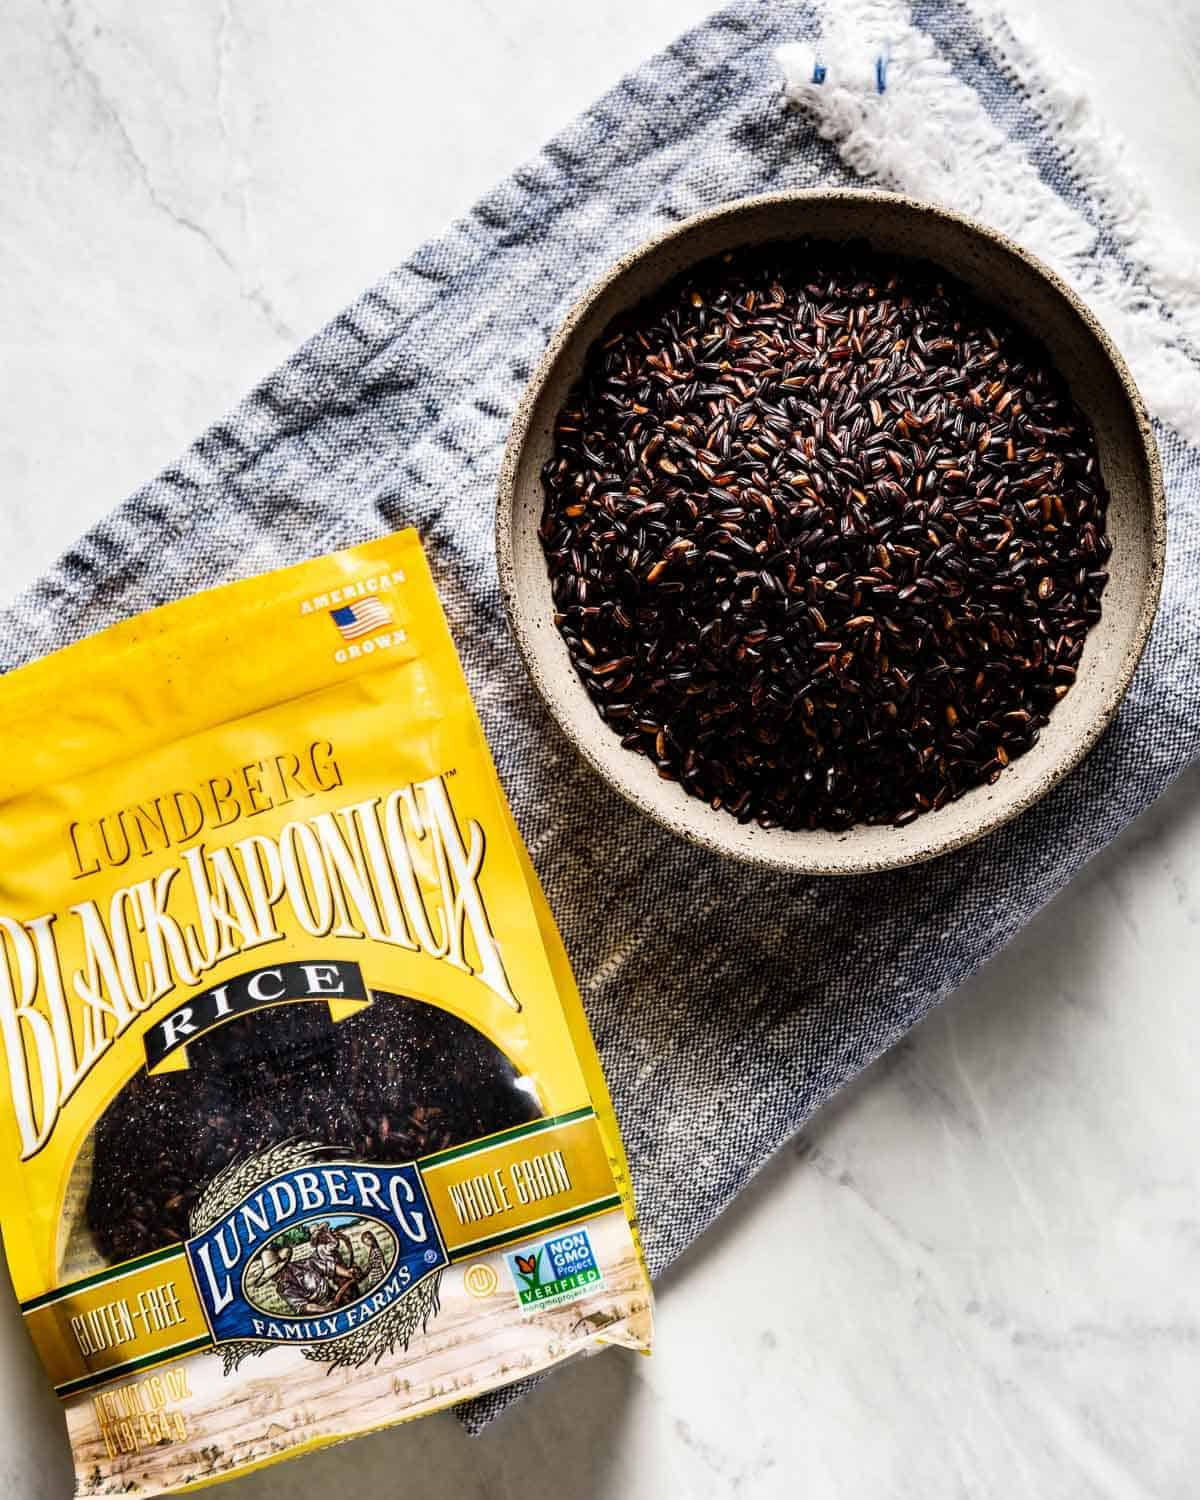 Black Japonica rice in its packaging with a bowl of it on the side